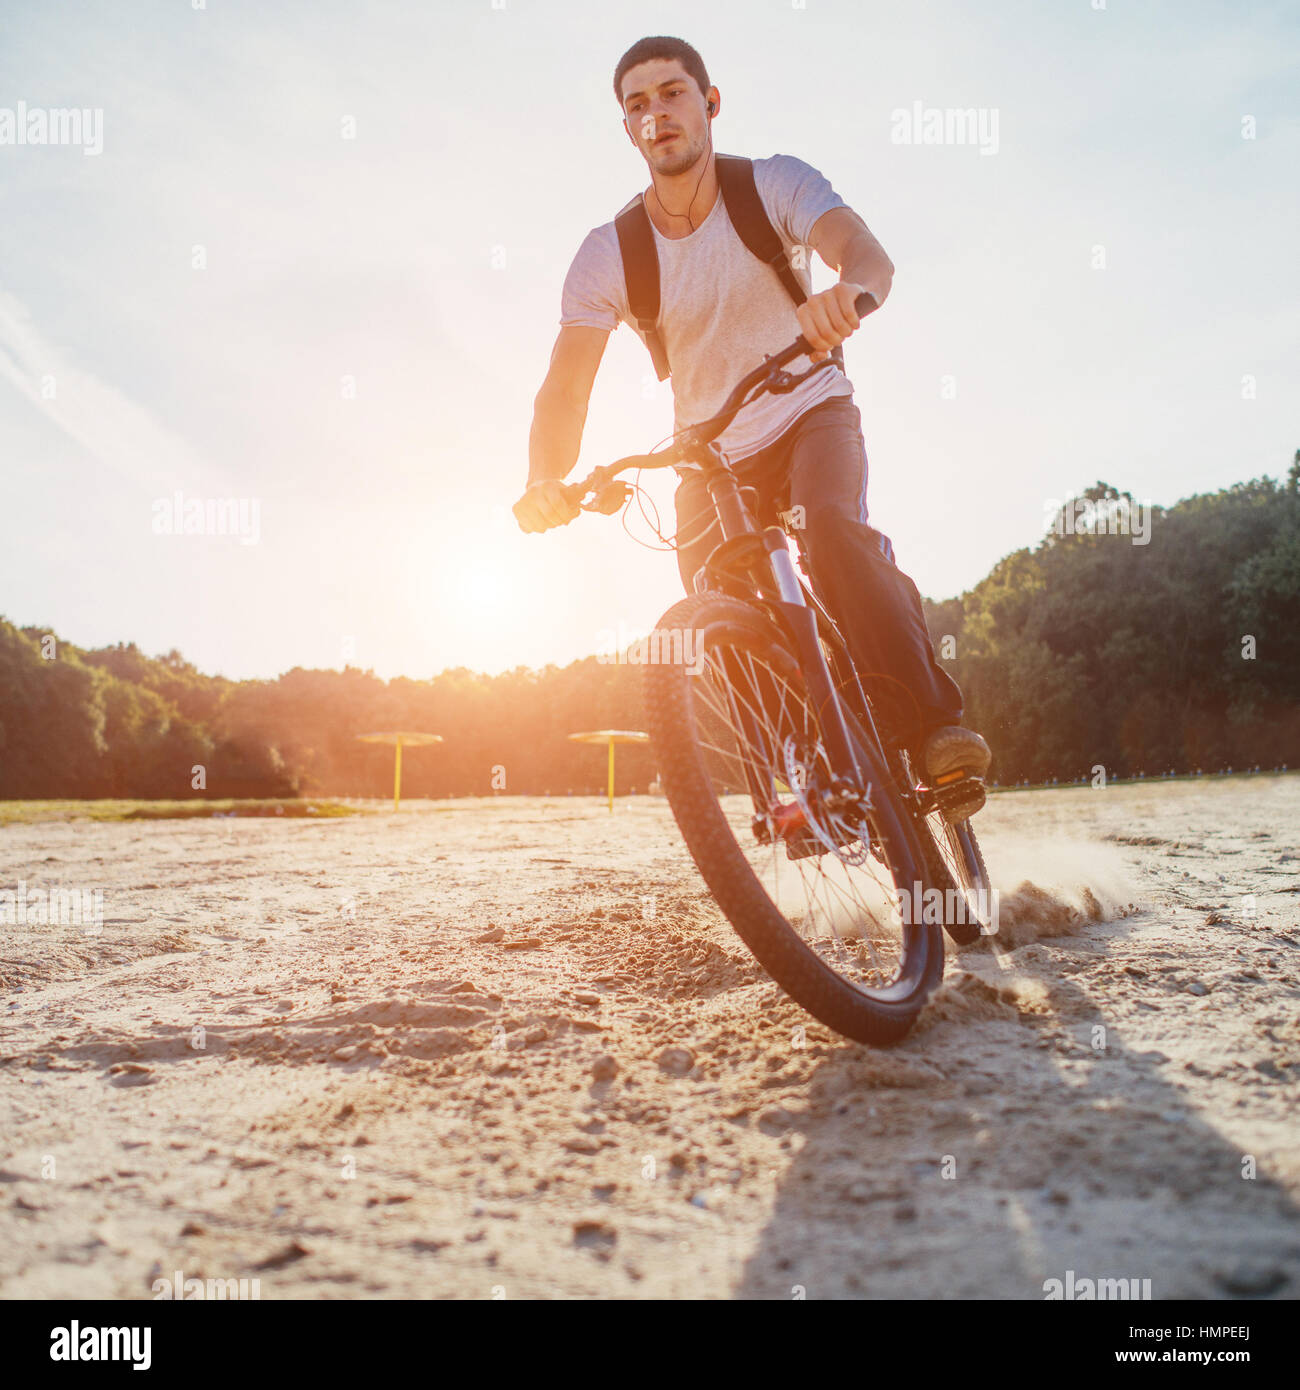 Biker riding along beach at sunset - Stock Image